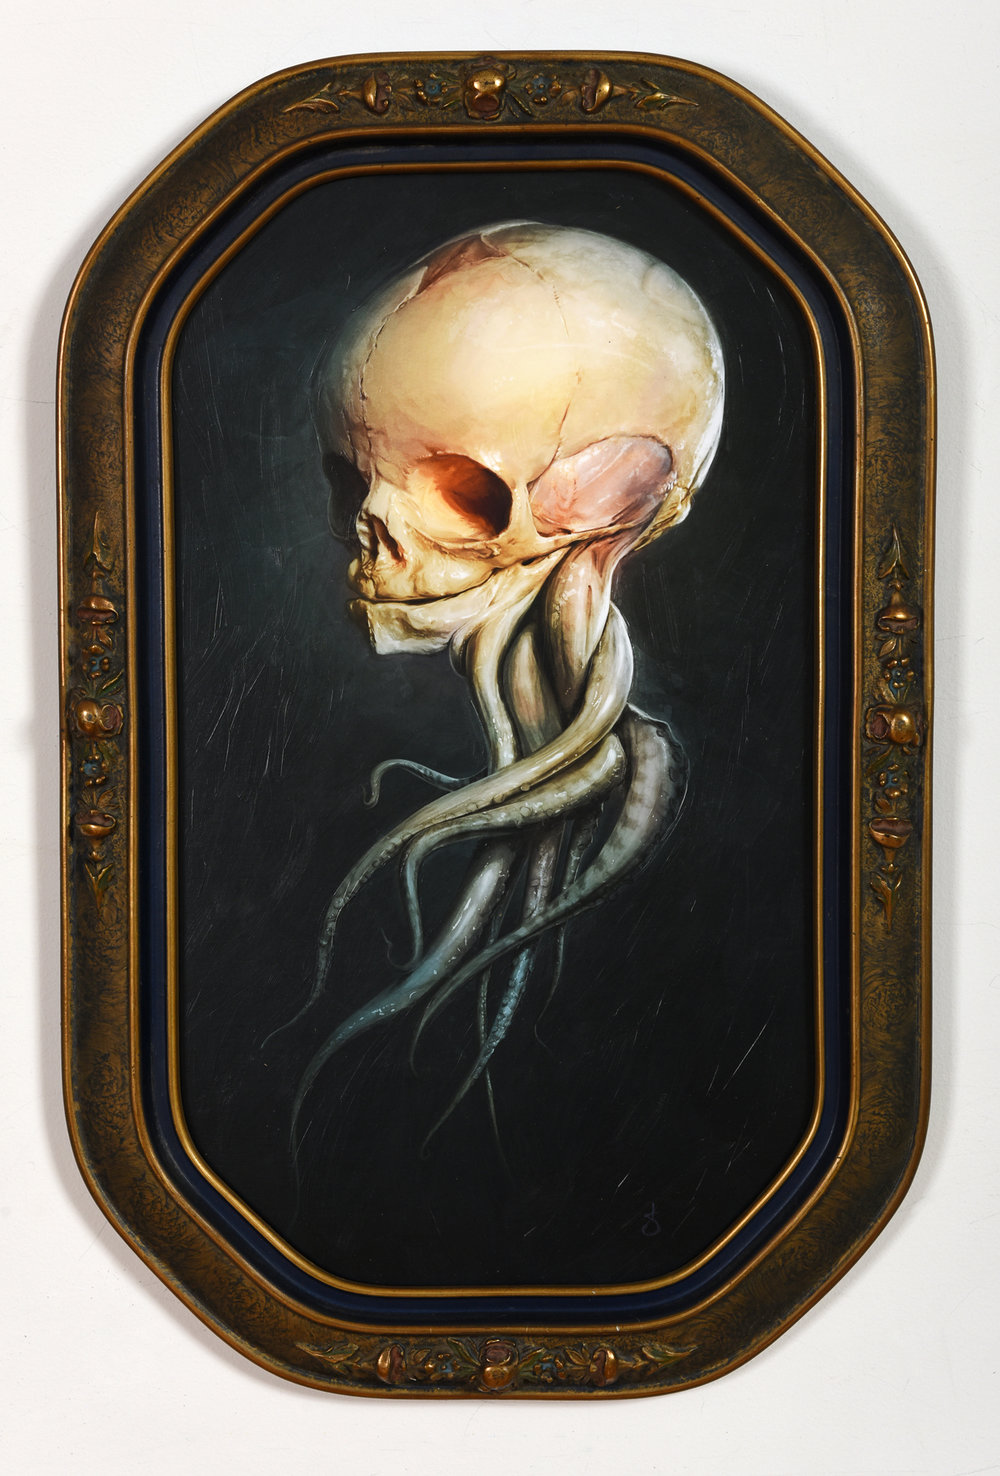 "Homo Marinus - $750   1 OF 1 MOUNTED, VARNISHED, HAND EMBELLISHED & SIGNED GICLEE PRINT • 11"" X 19"" IN ANTIQUE FRAME   SOLD!"